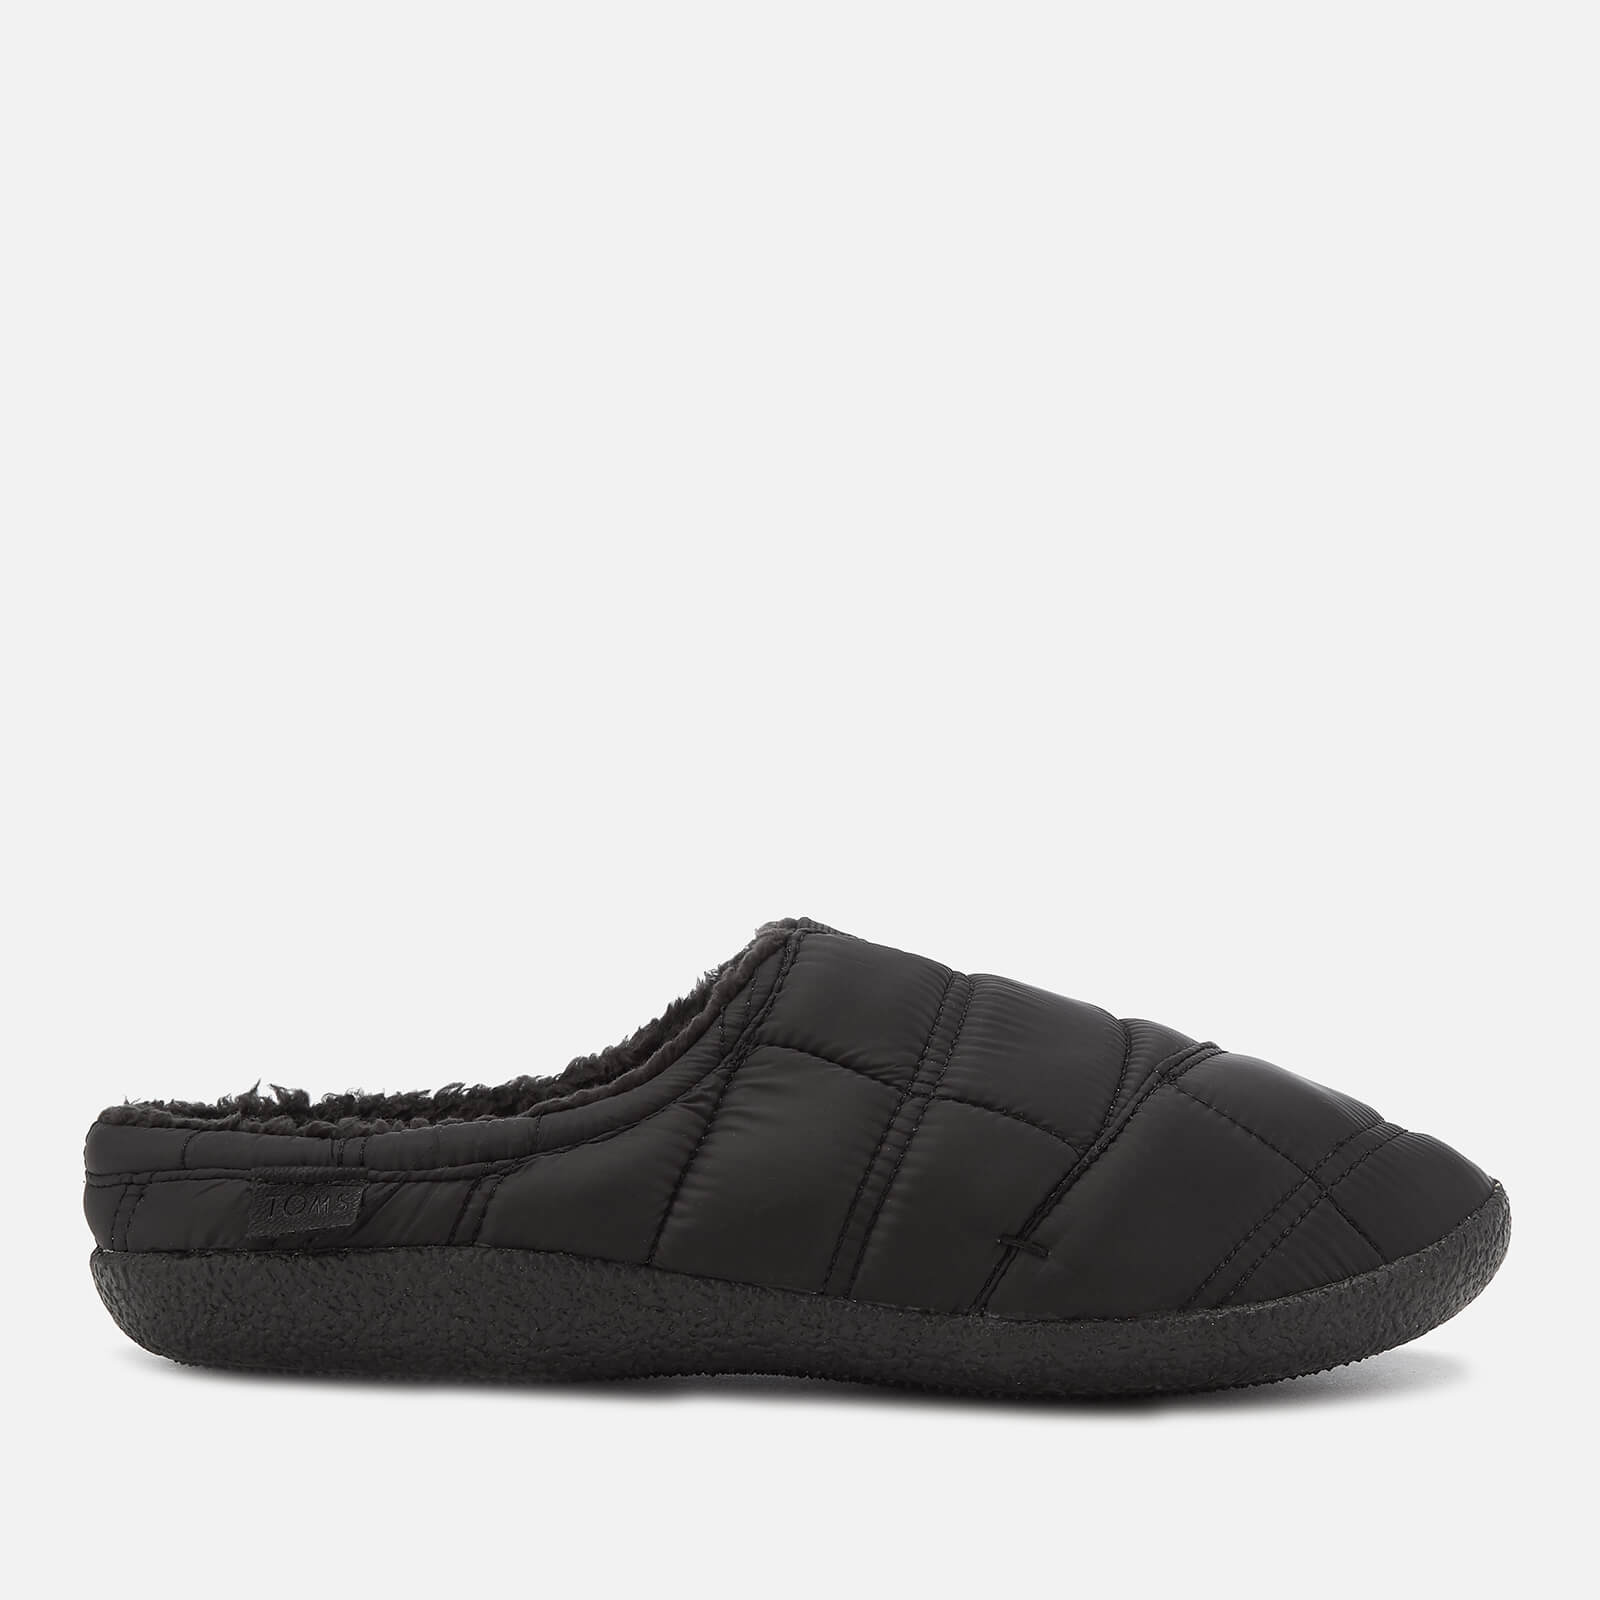 3ac315defd7 TOMS Men s Berkeley Quilted Slippers - Black Clothing